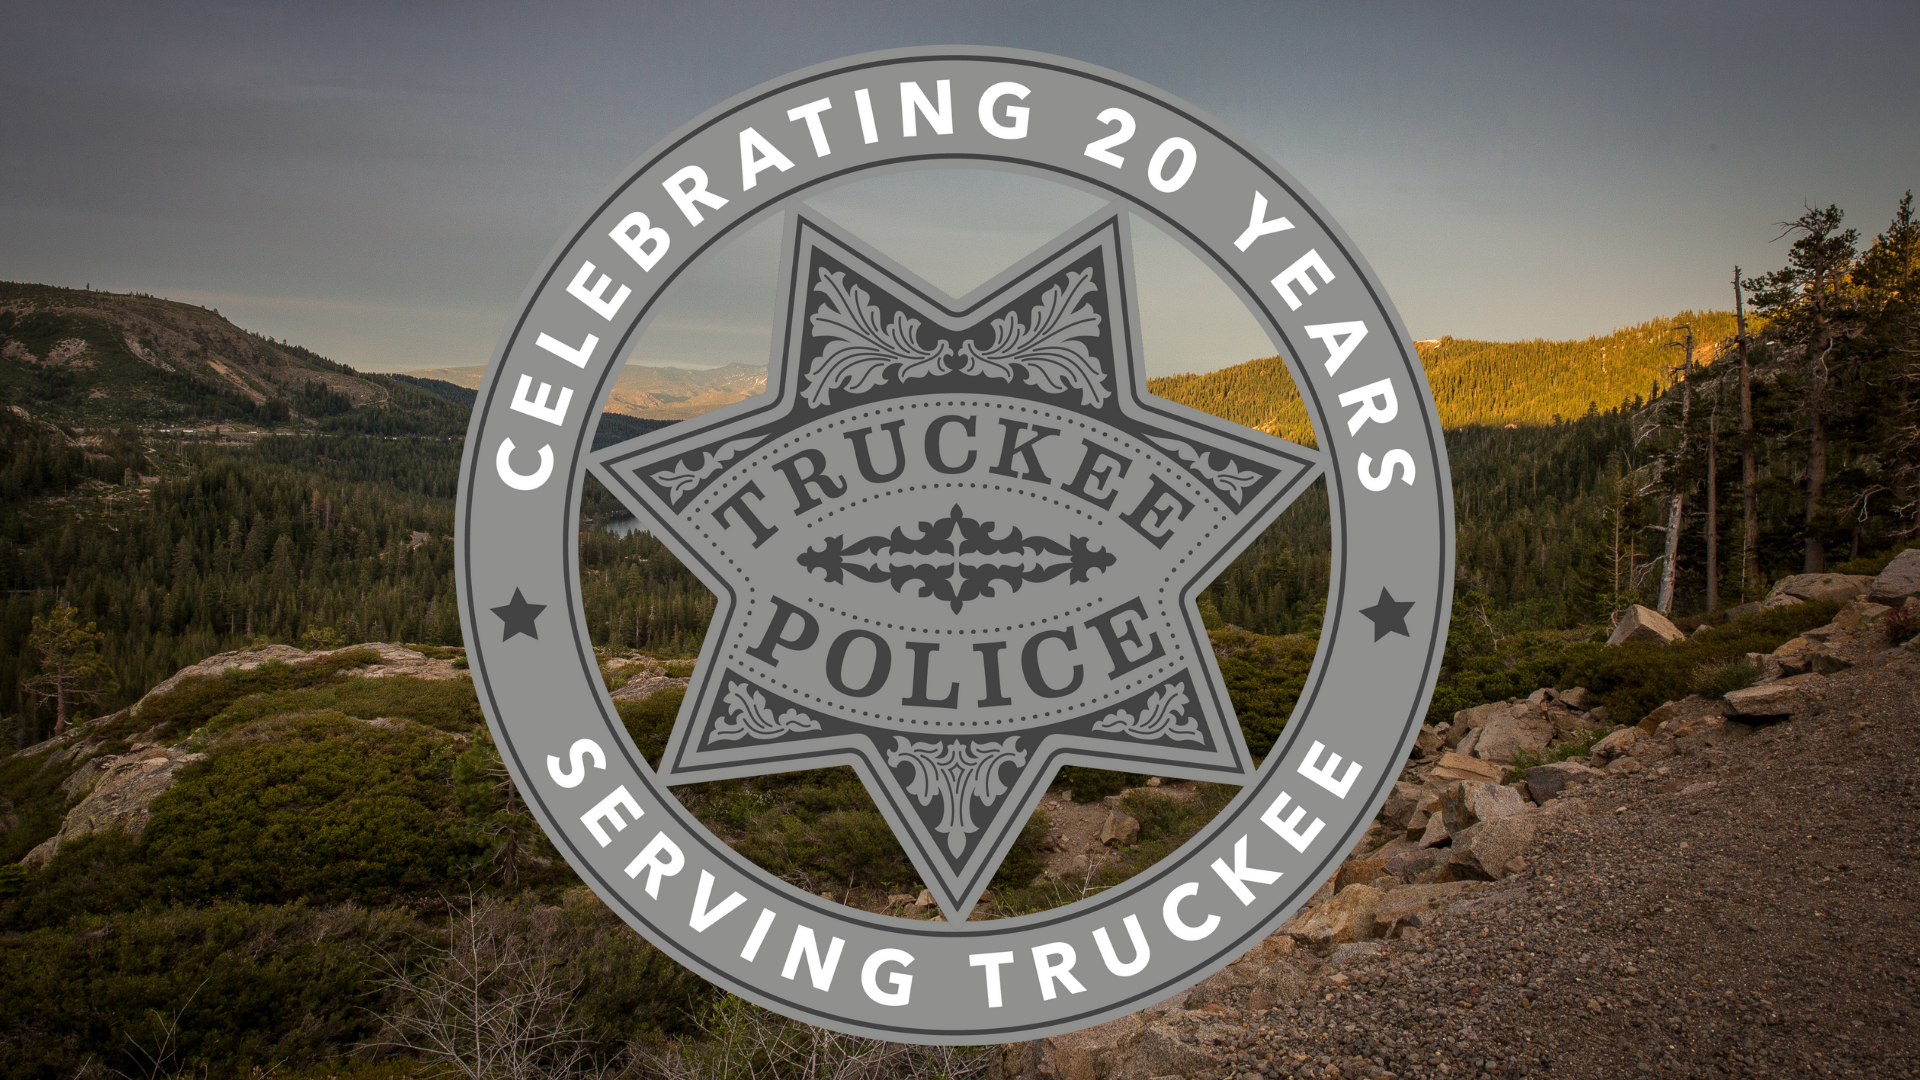 #20YearsOfService image